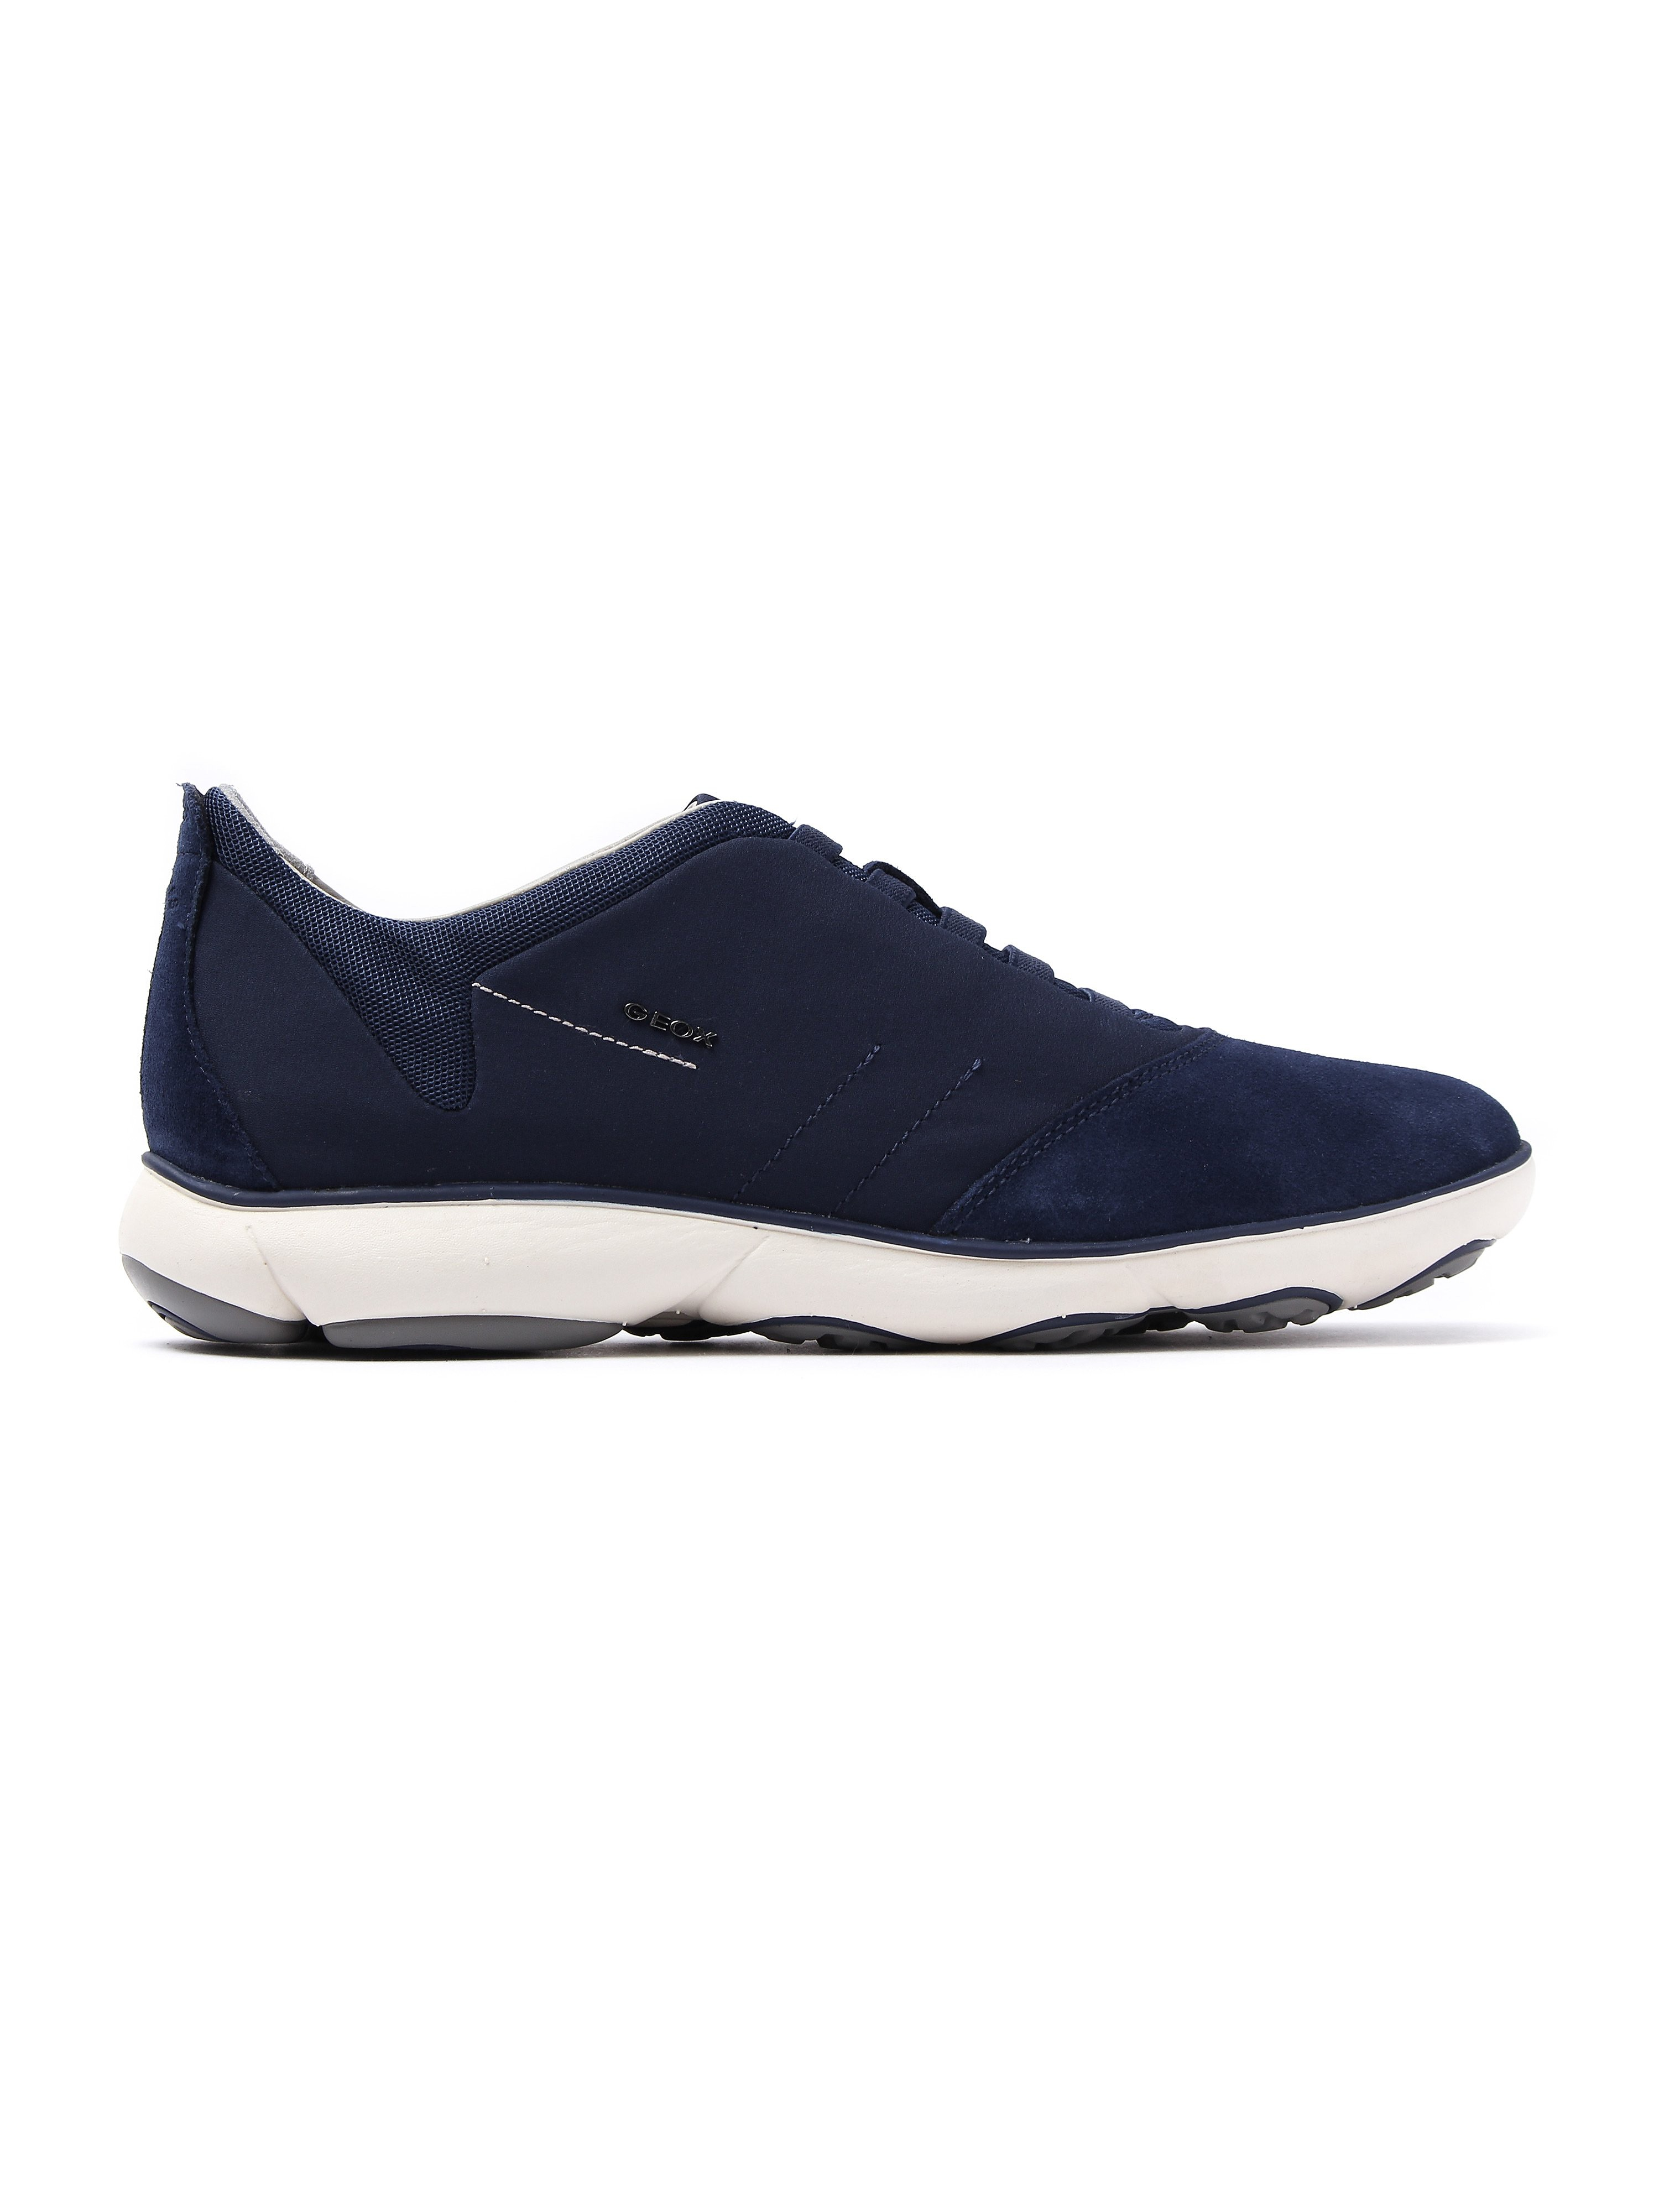 Geox Men's Nebula Textile & Suede Trainers - Navy